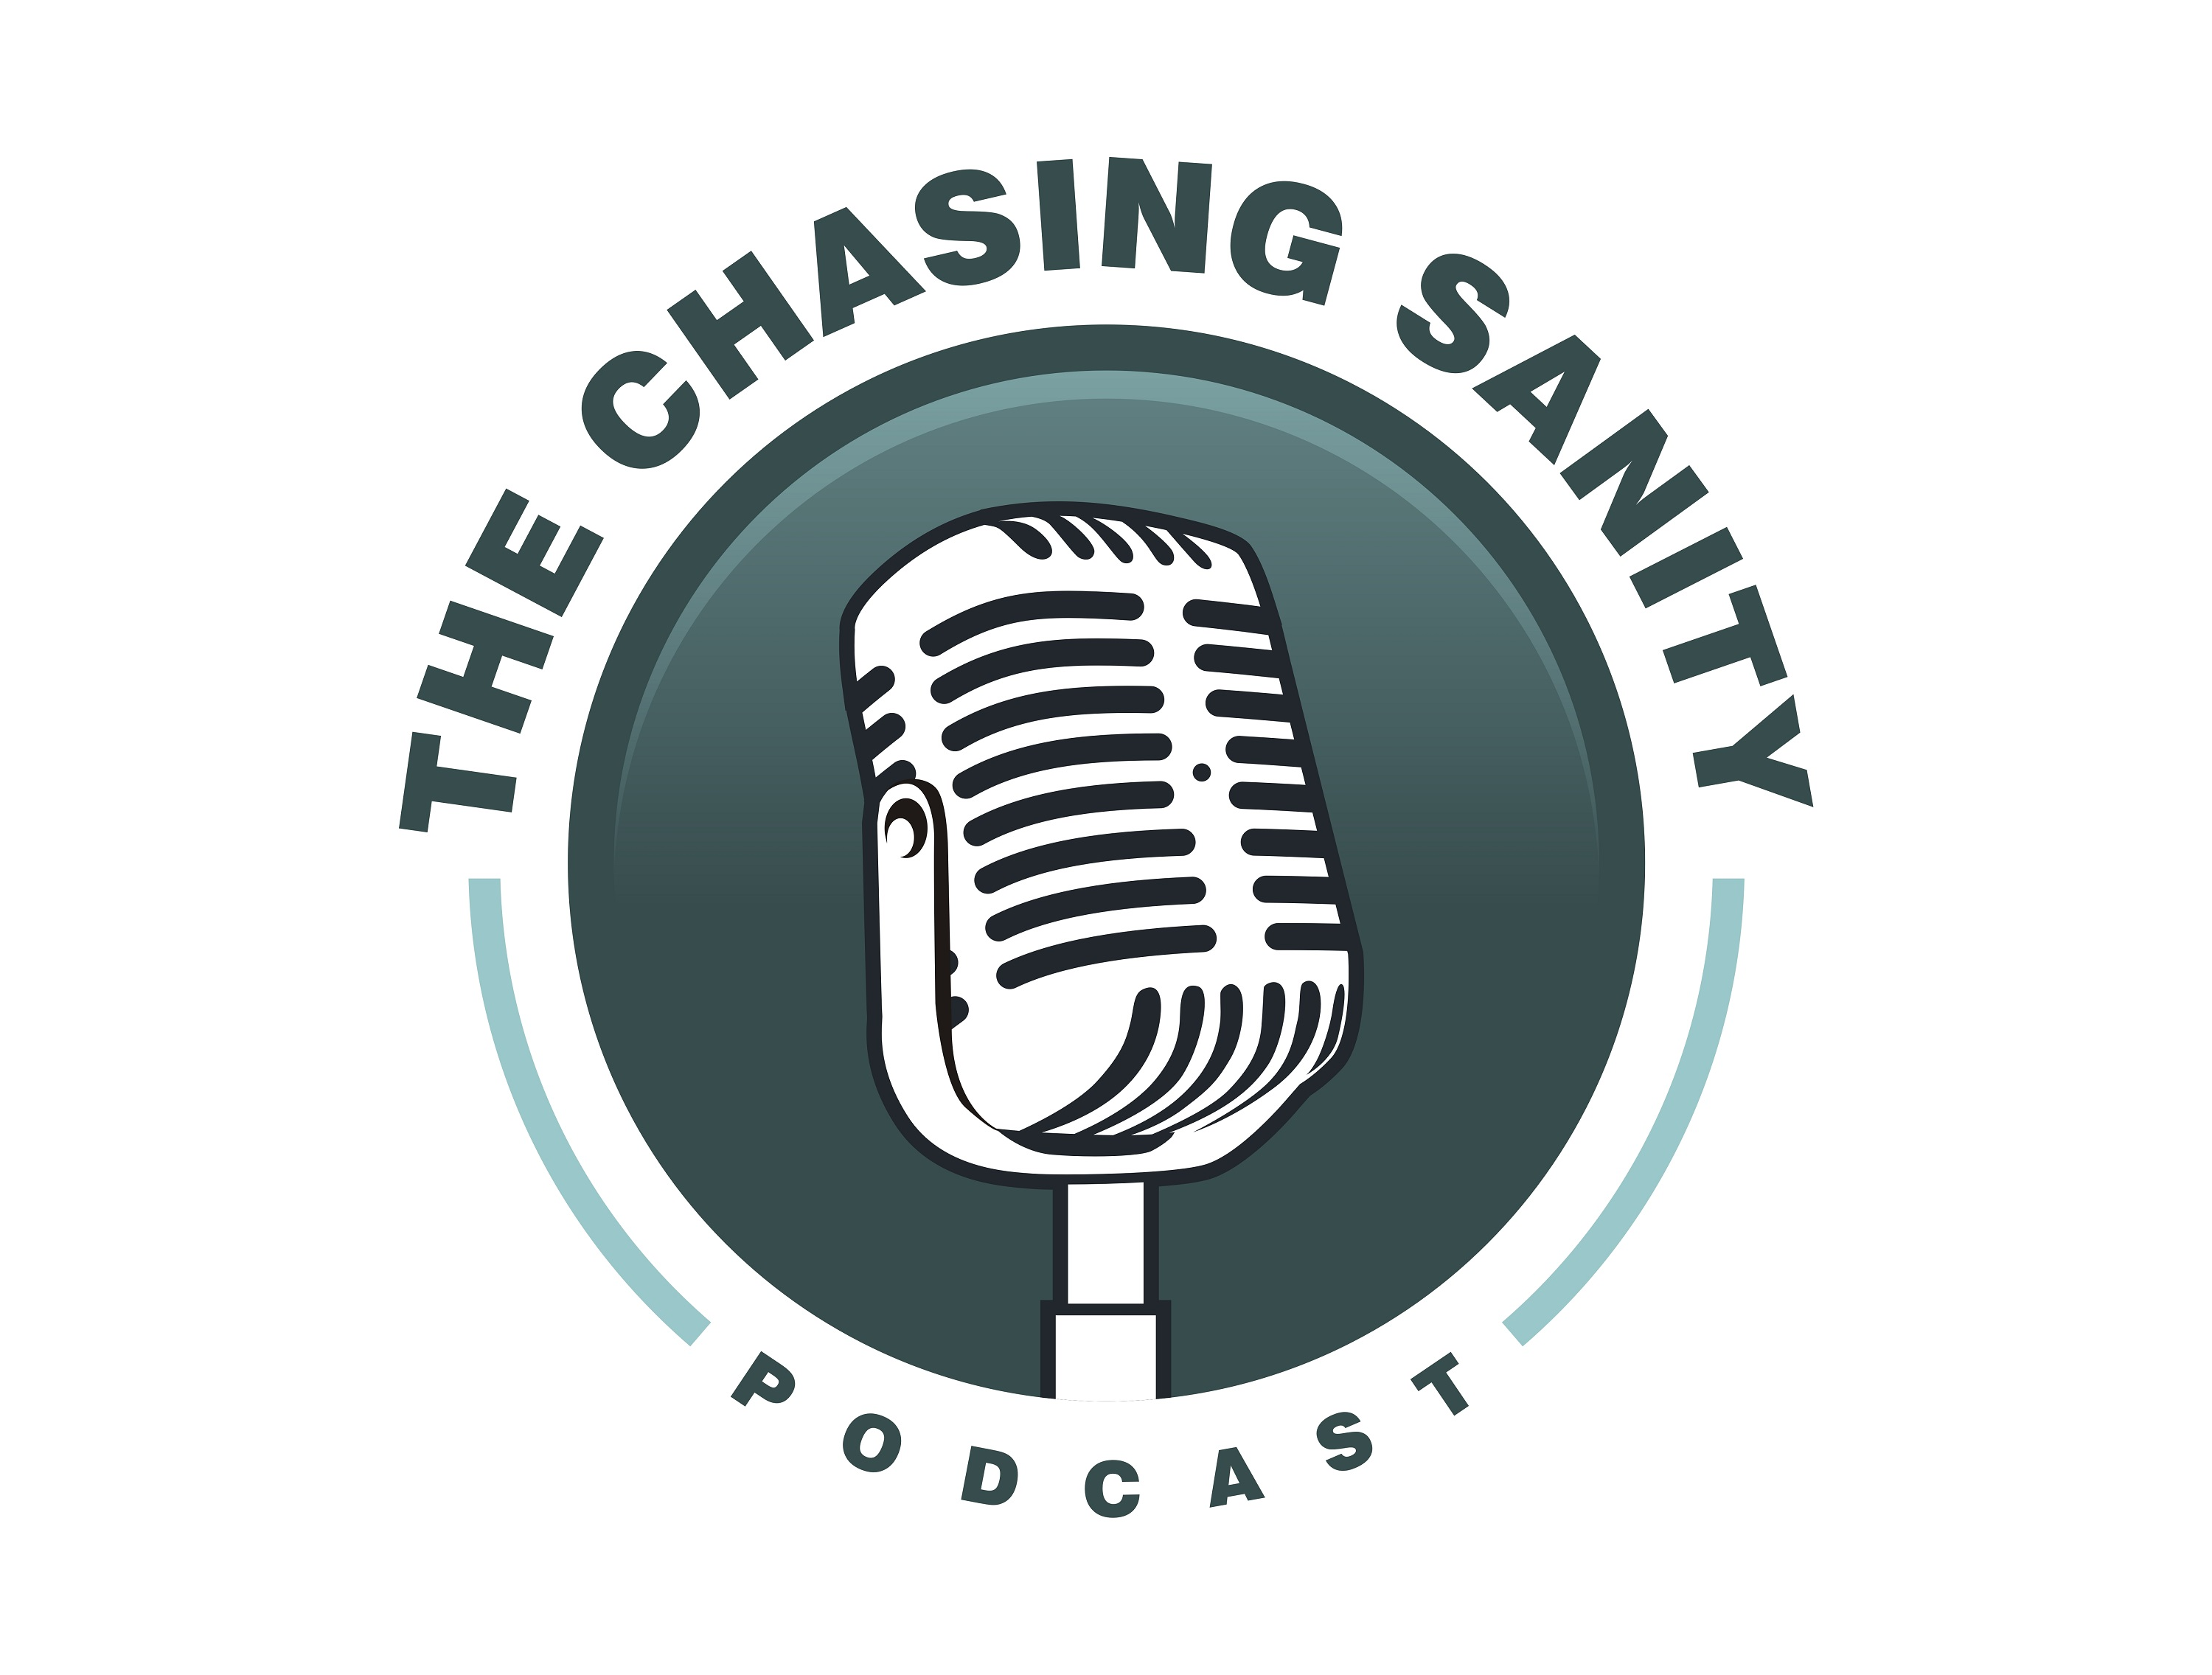 The Chasing Sanity Podcast show art